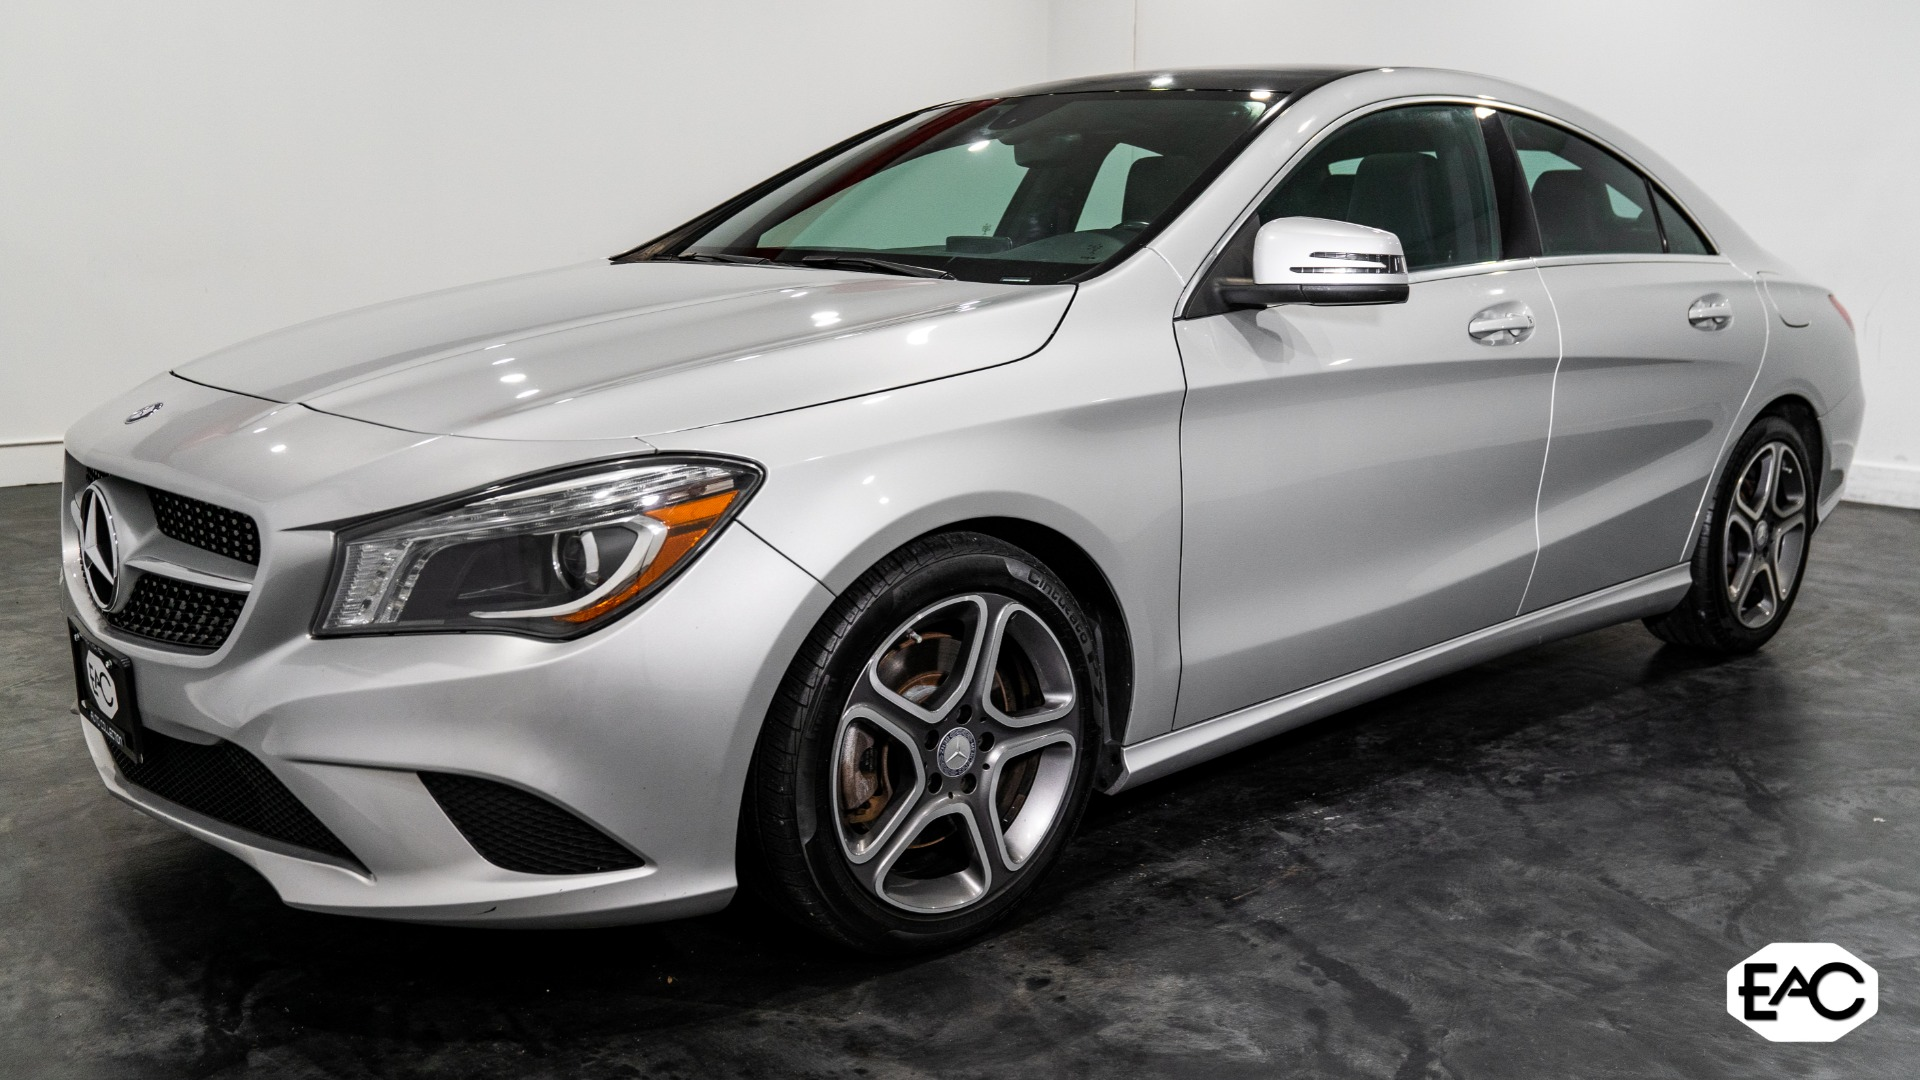 Used 2014 Mercedes-Benz CLA CLA 250 for sale Sold at Empire Auto Collection in Warren MI 48091 1